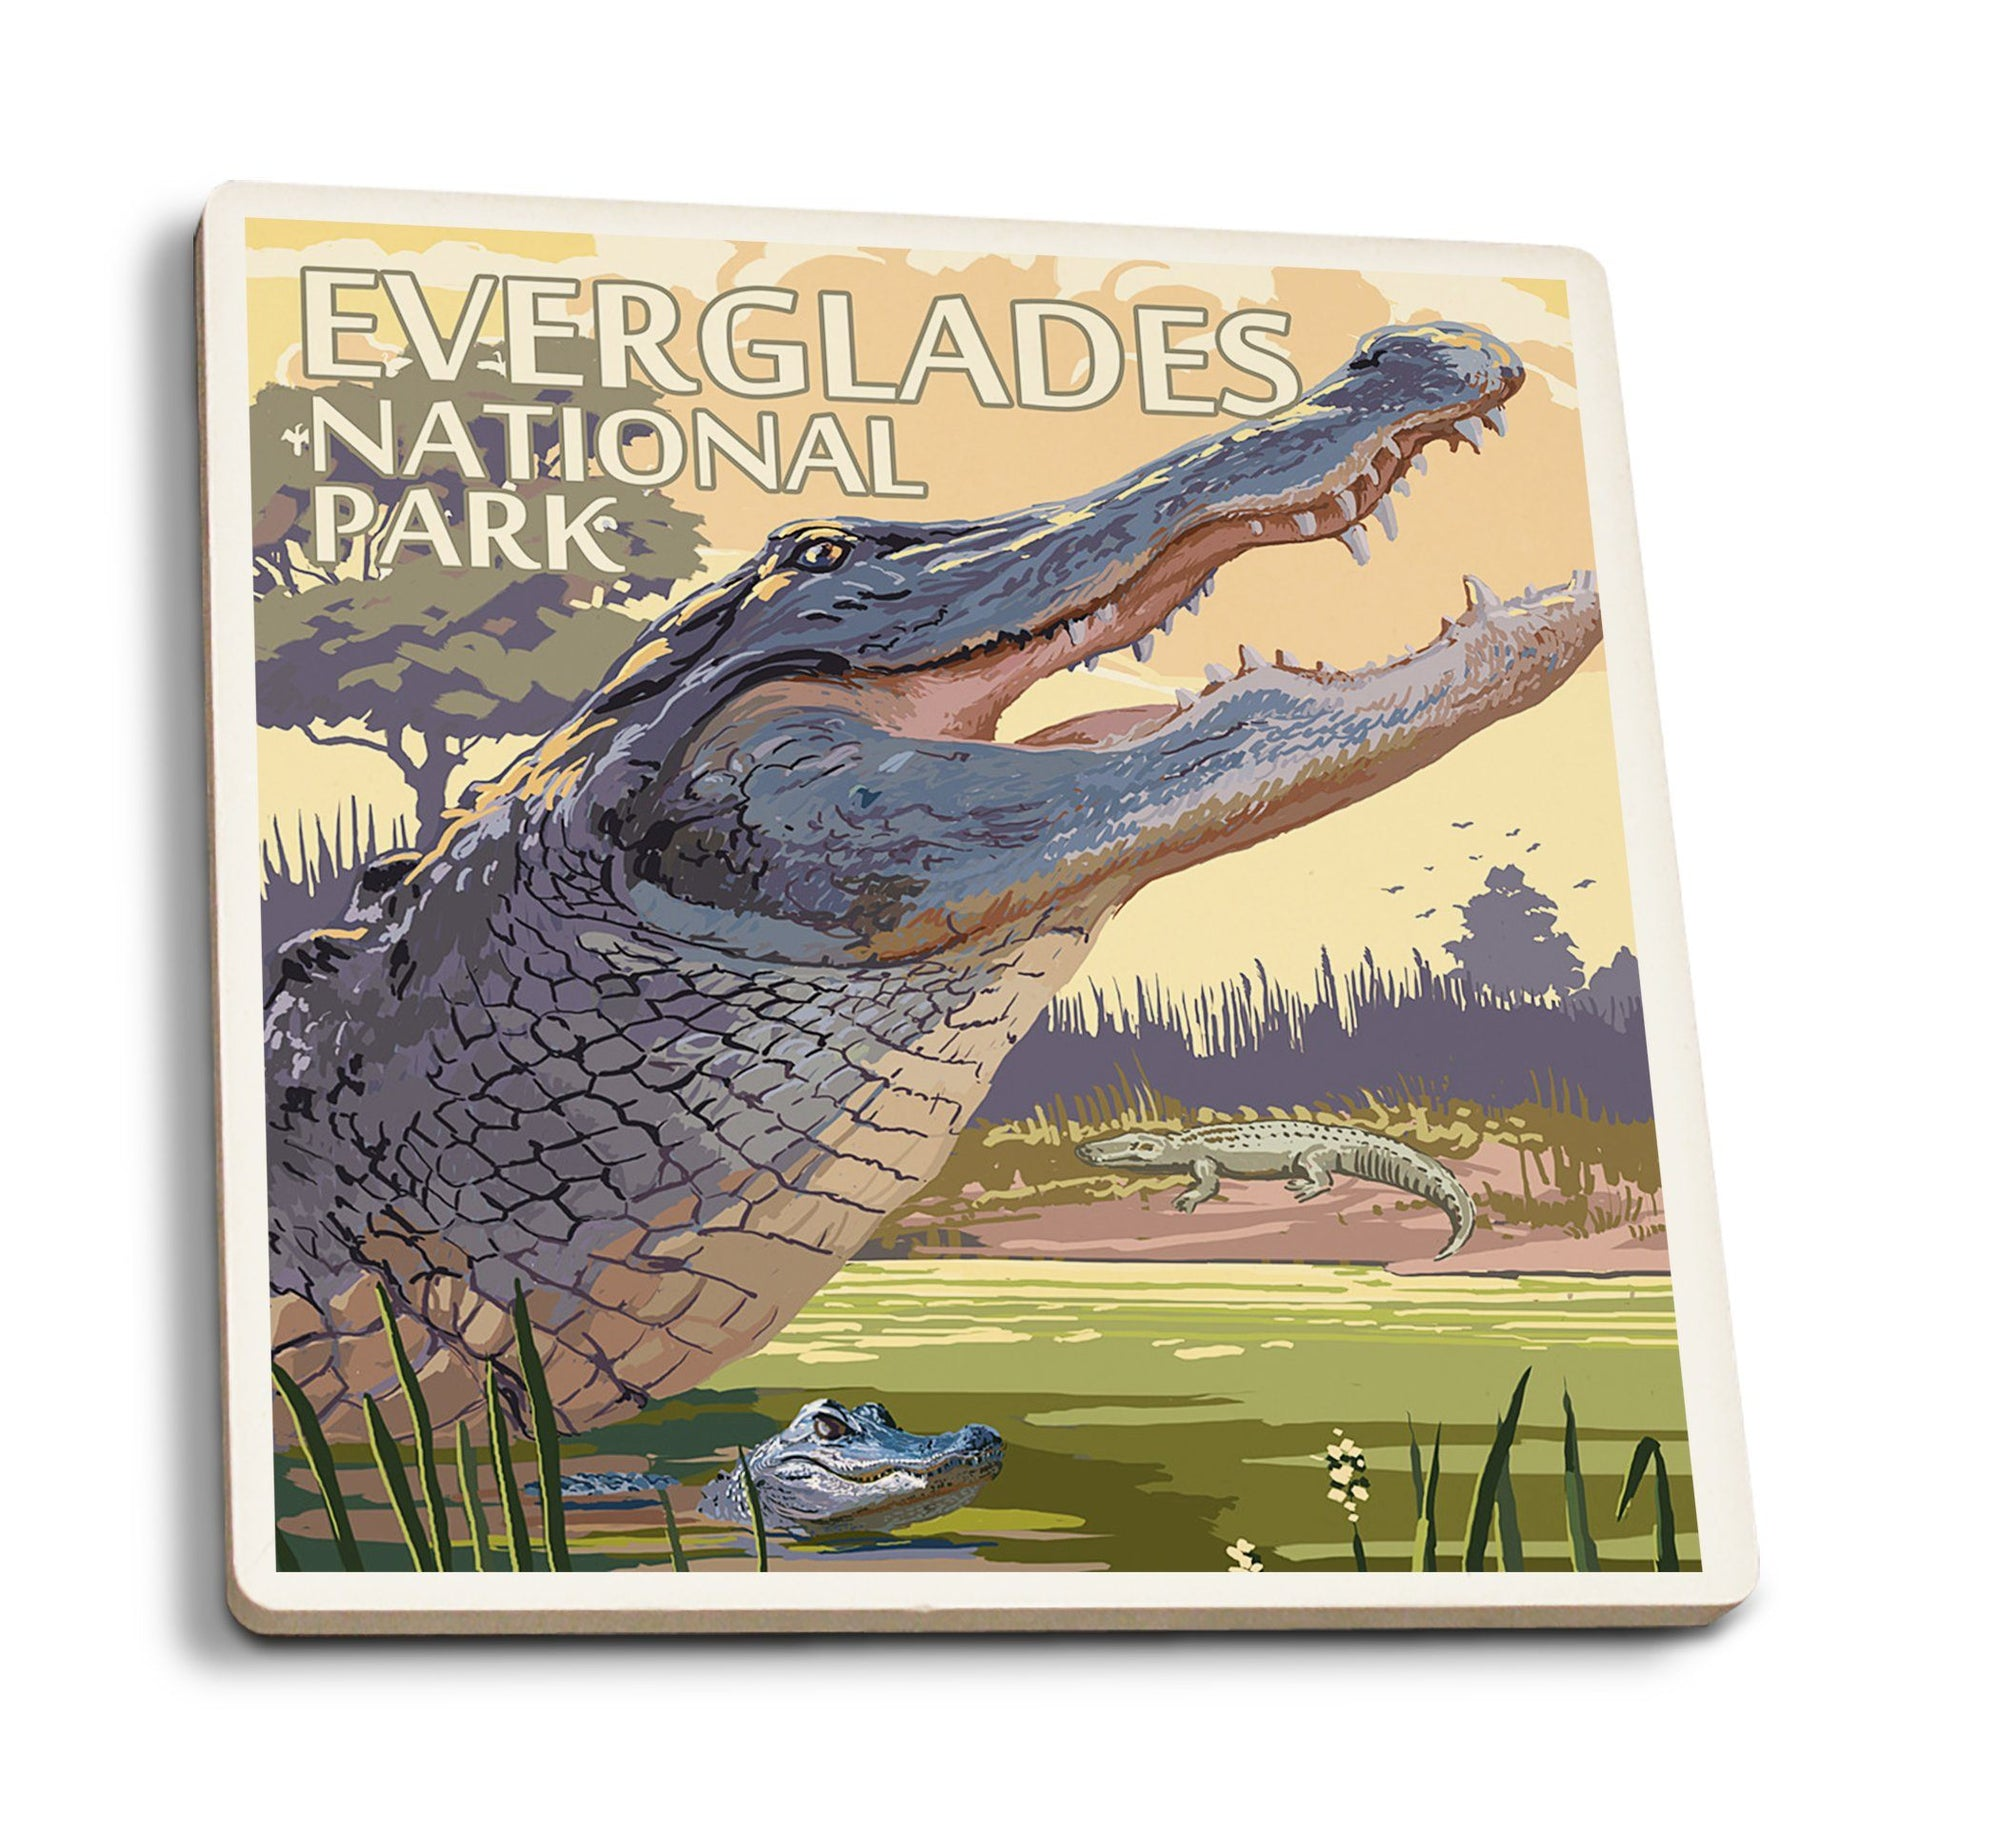 Coaster (The Everglades National Park, Florida - Alligator Scene - Lantern Press Artwork) Coaster Nightingale Boutique Coaster Pack